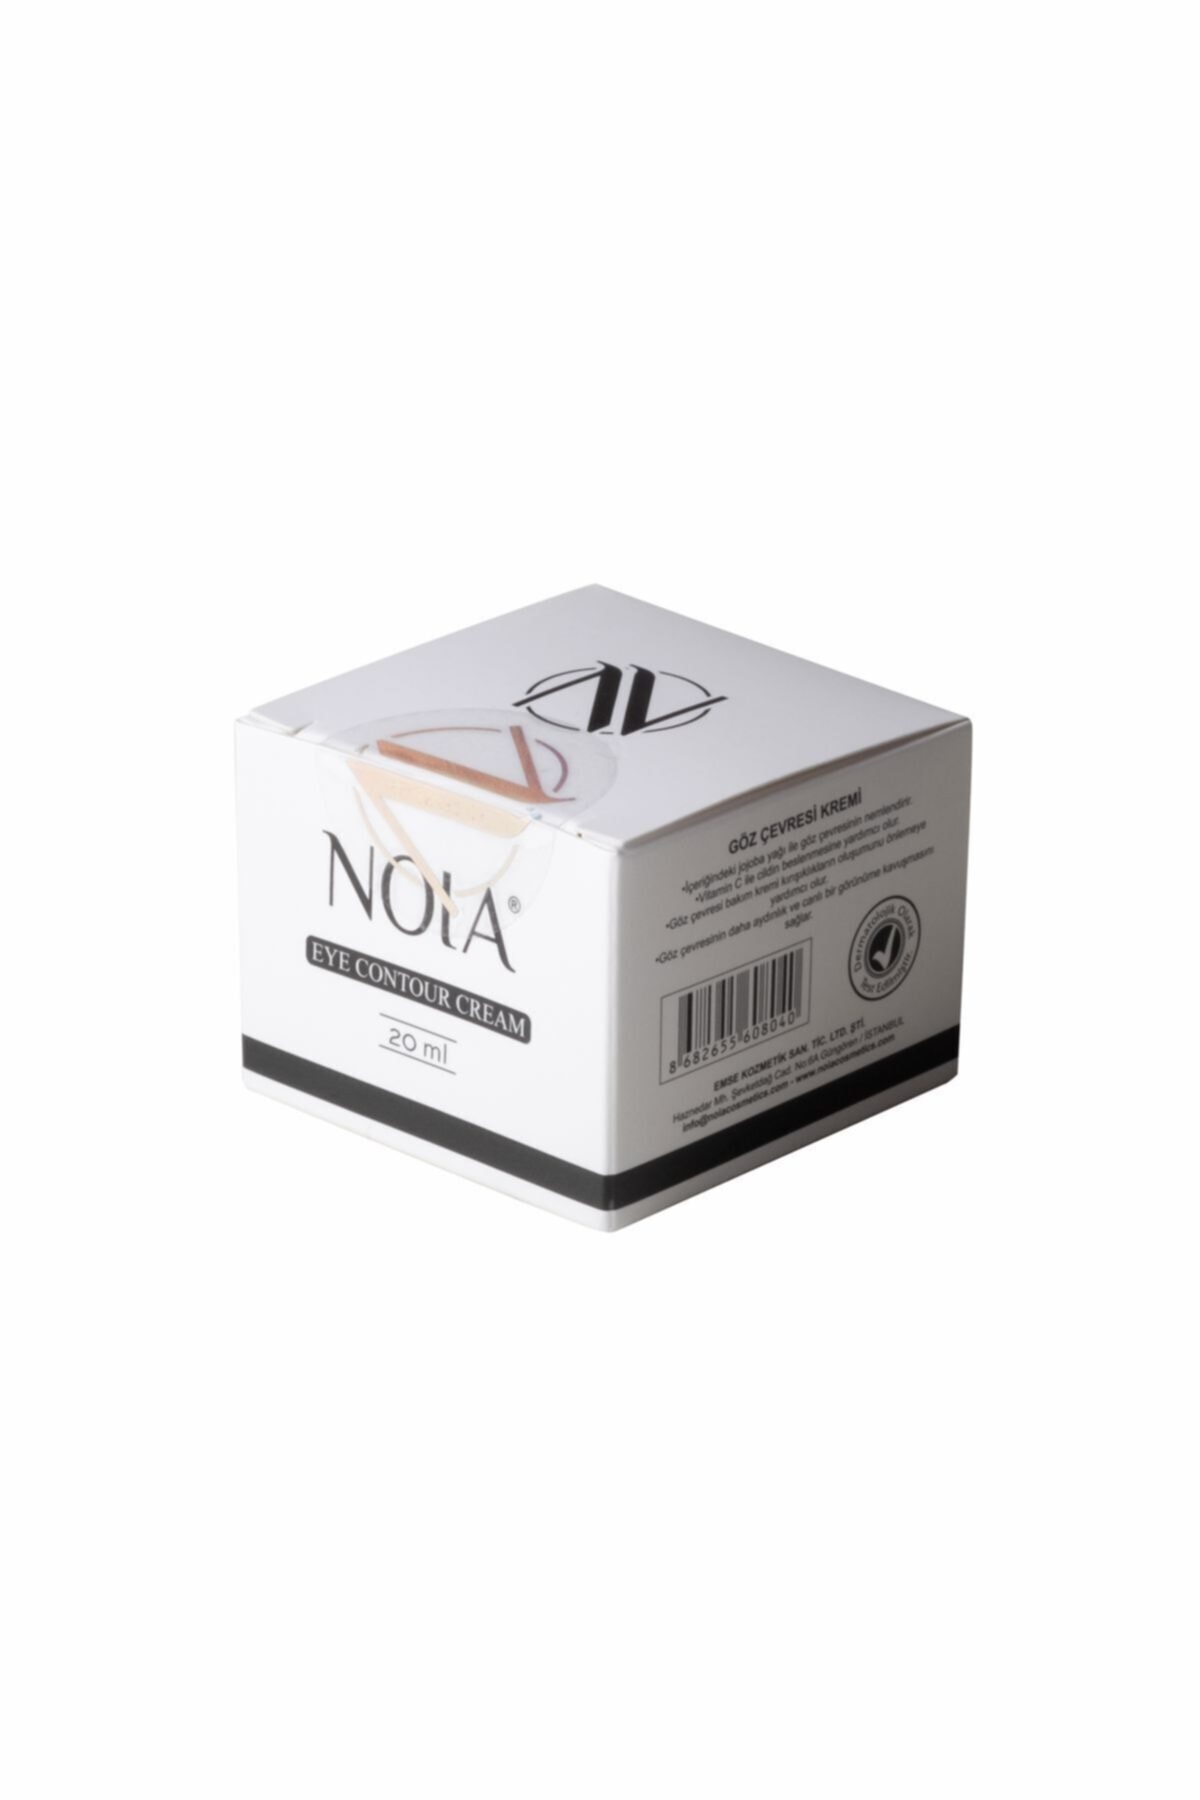 Noia Eye Contour Cream 2